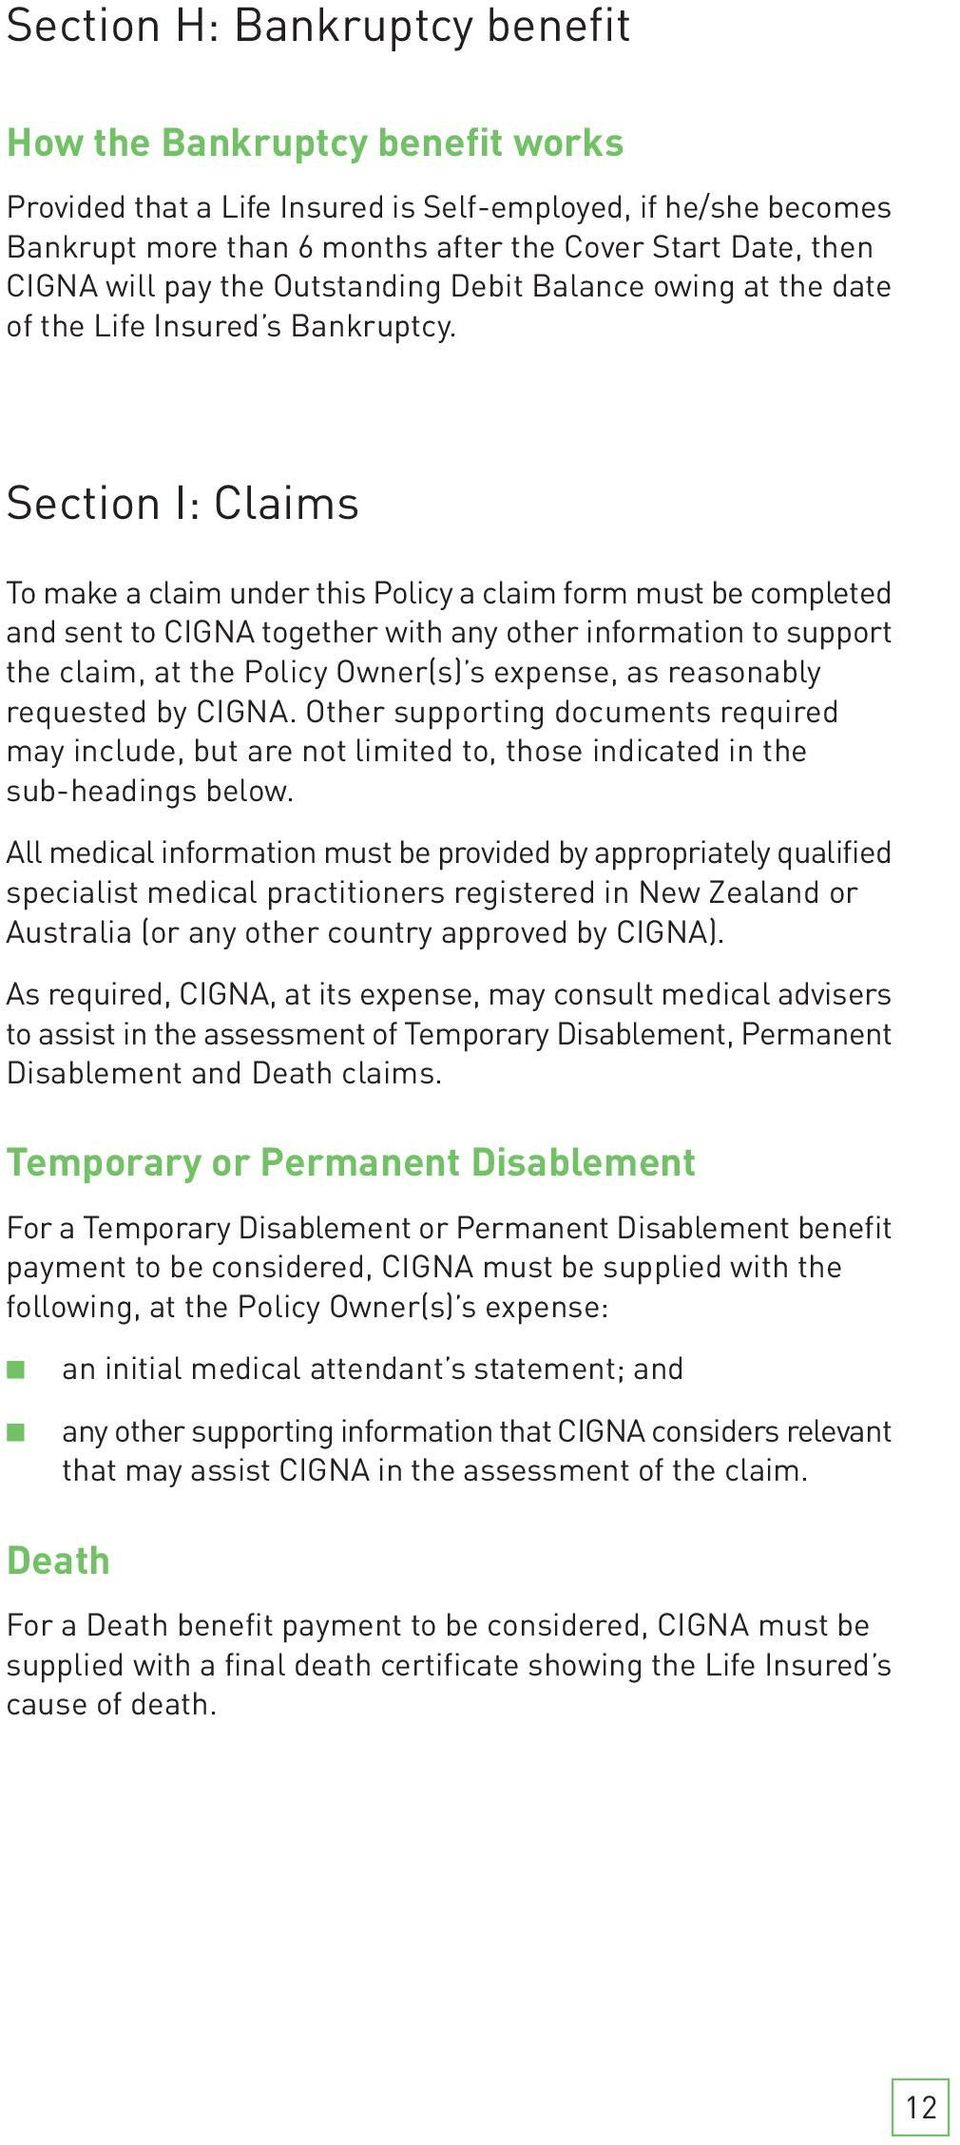 Section I: Claims To make a claim under this Policy a claim form must be completed and sent to CIGNA together with any other information to support the claim, at the Policy Owner(s) s expense, as